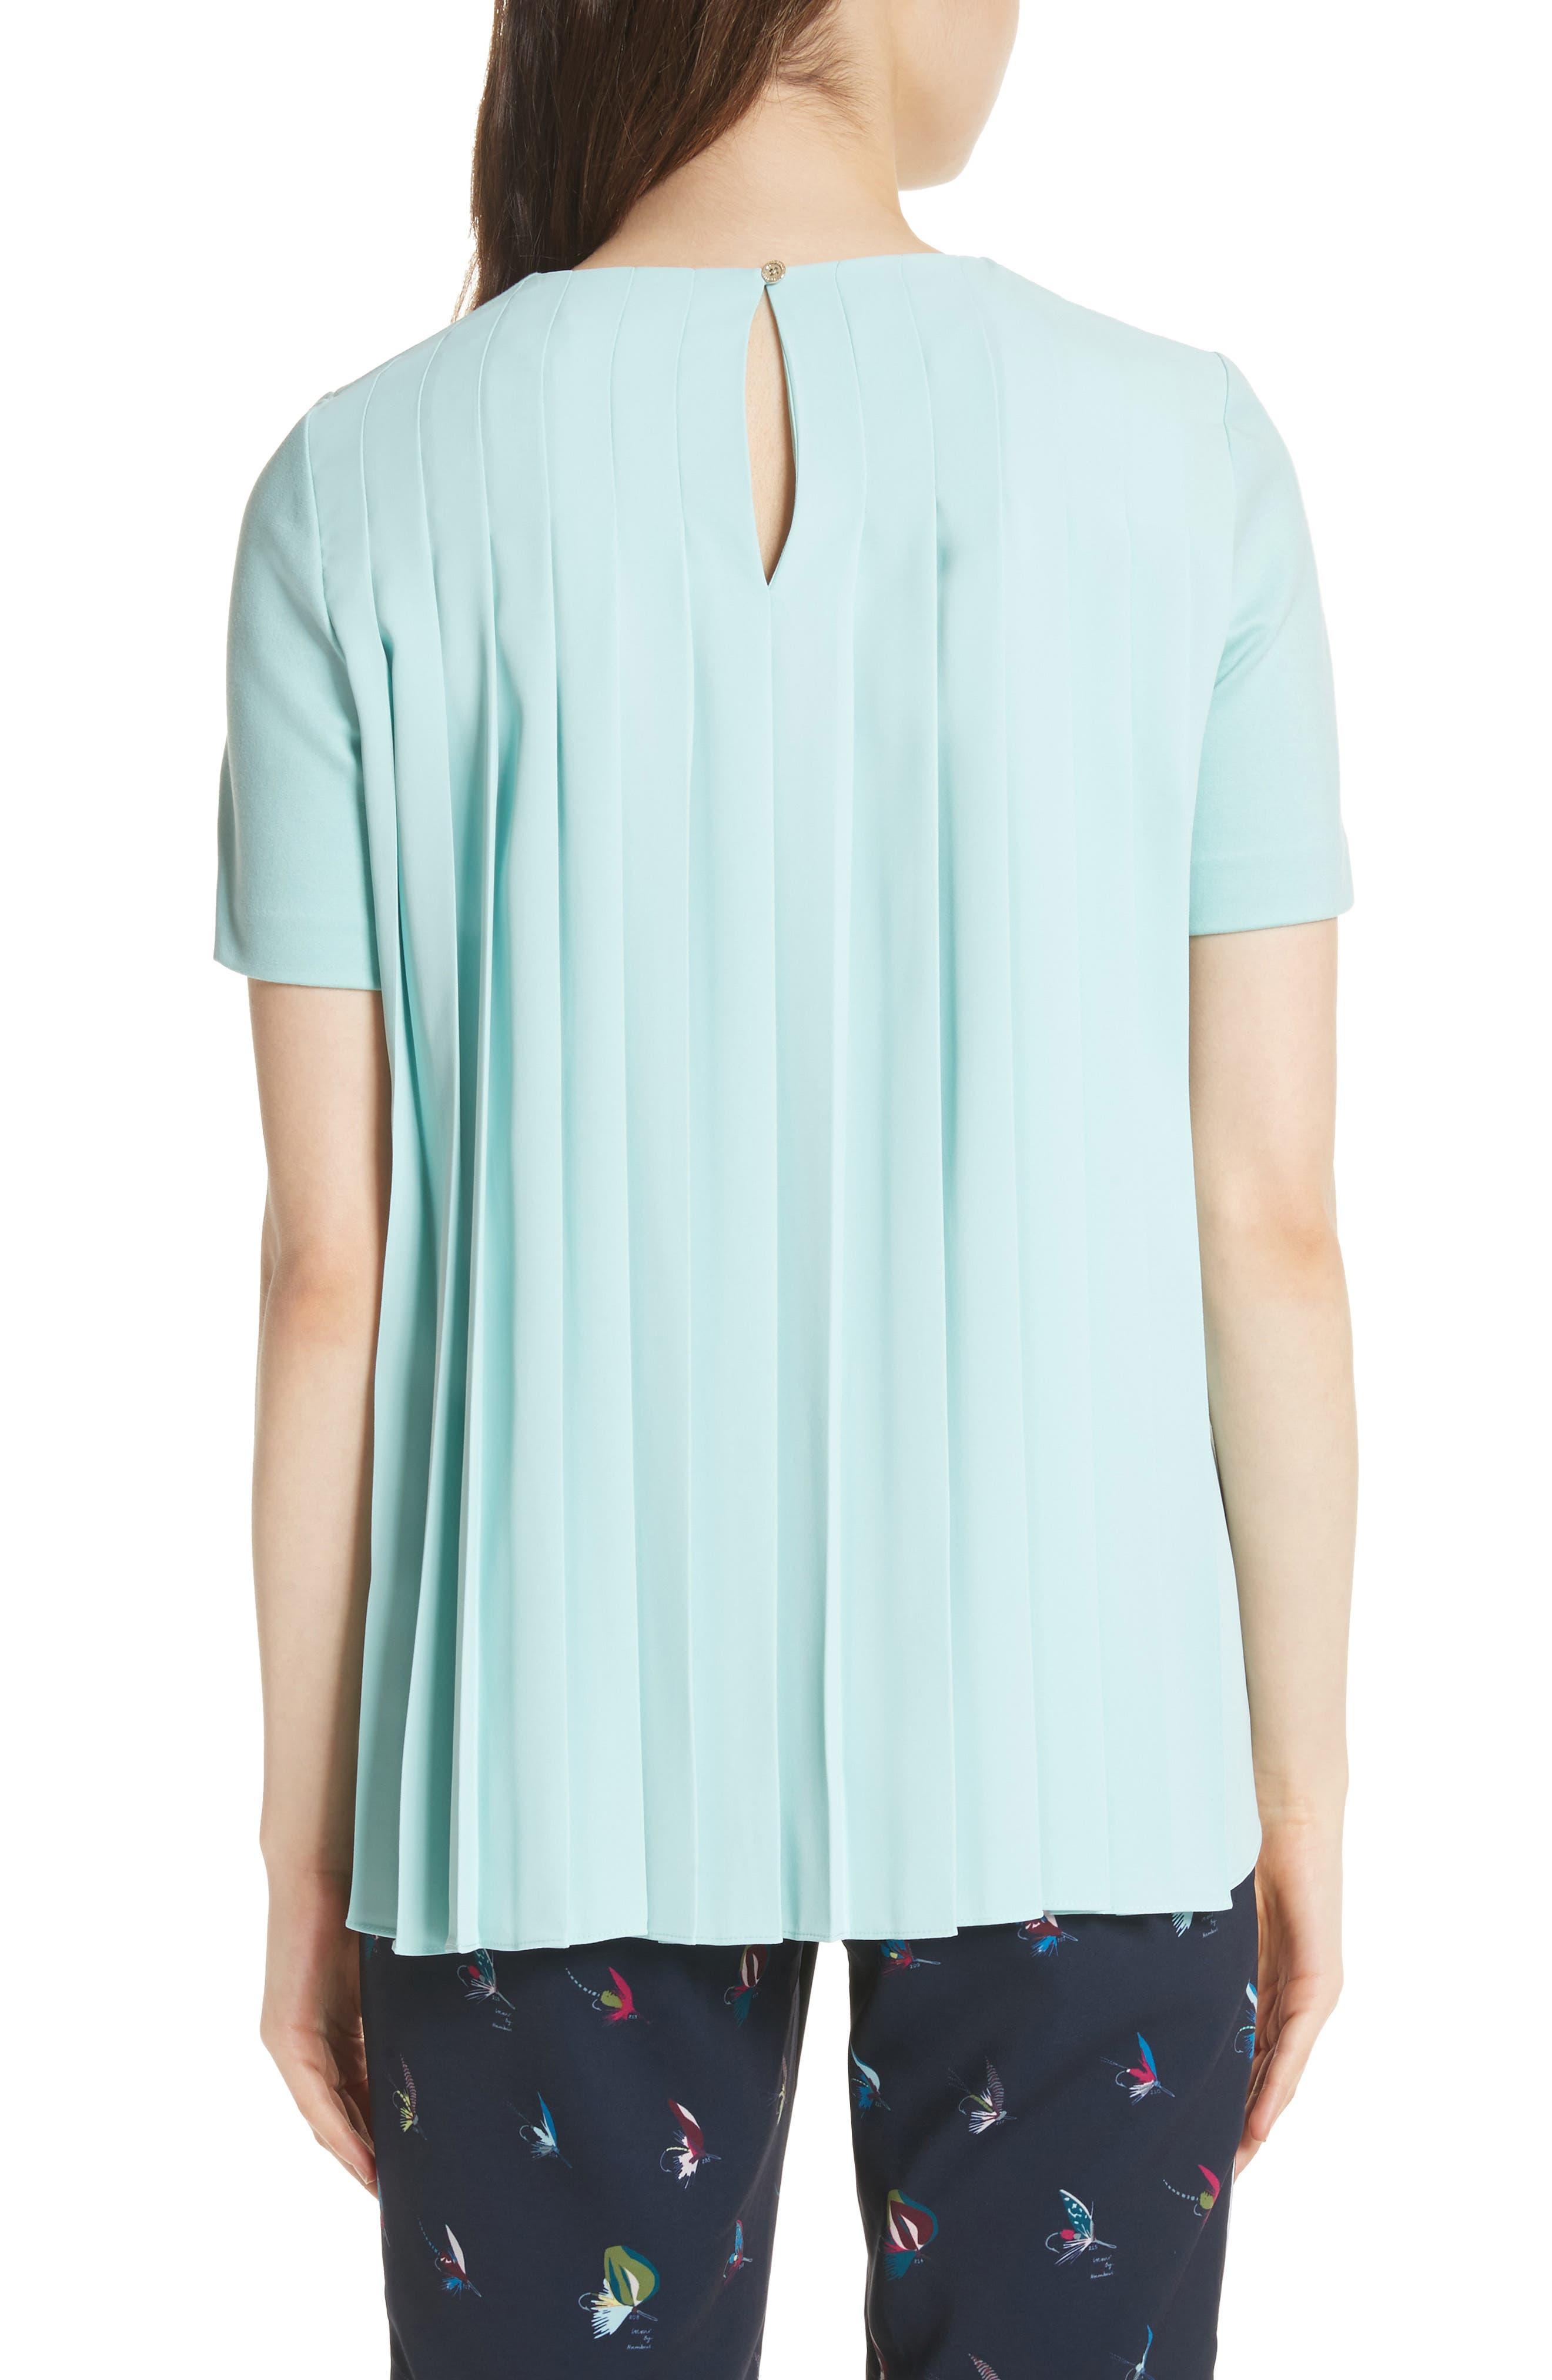 Colour by Numbers Naevaa Pleat Back Top,                             Alternate thumbnail 2, color,                             Mint